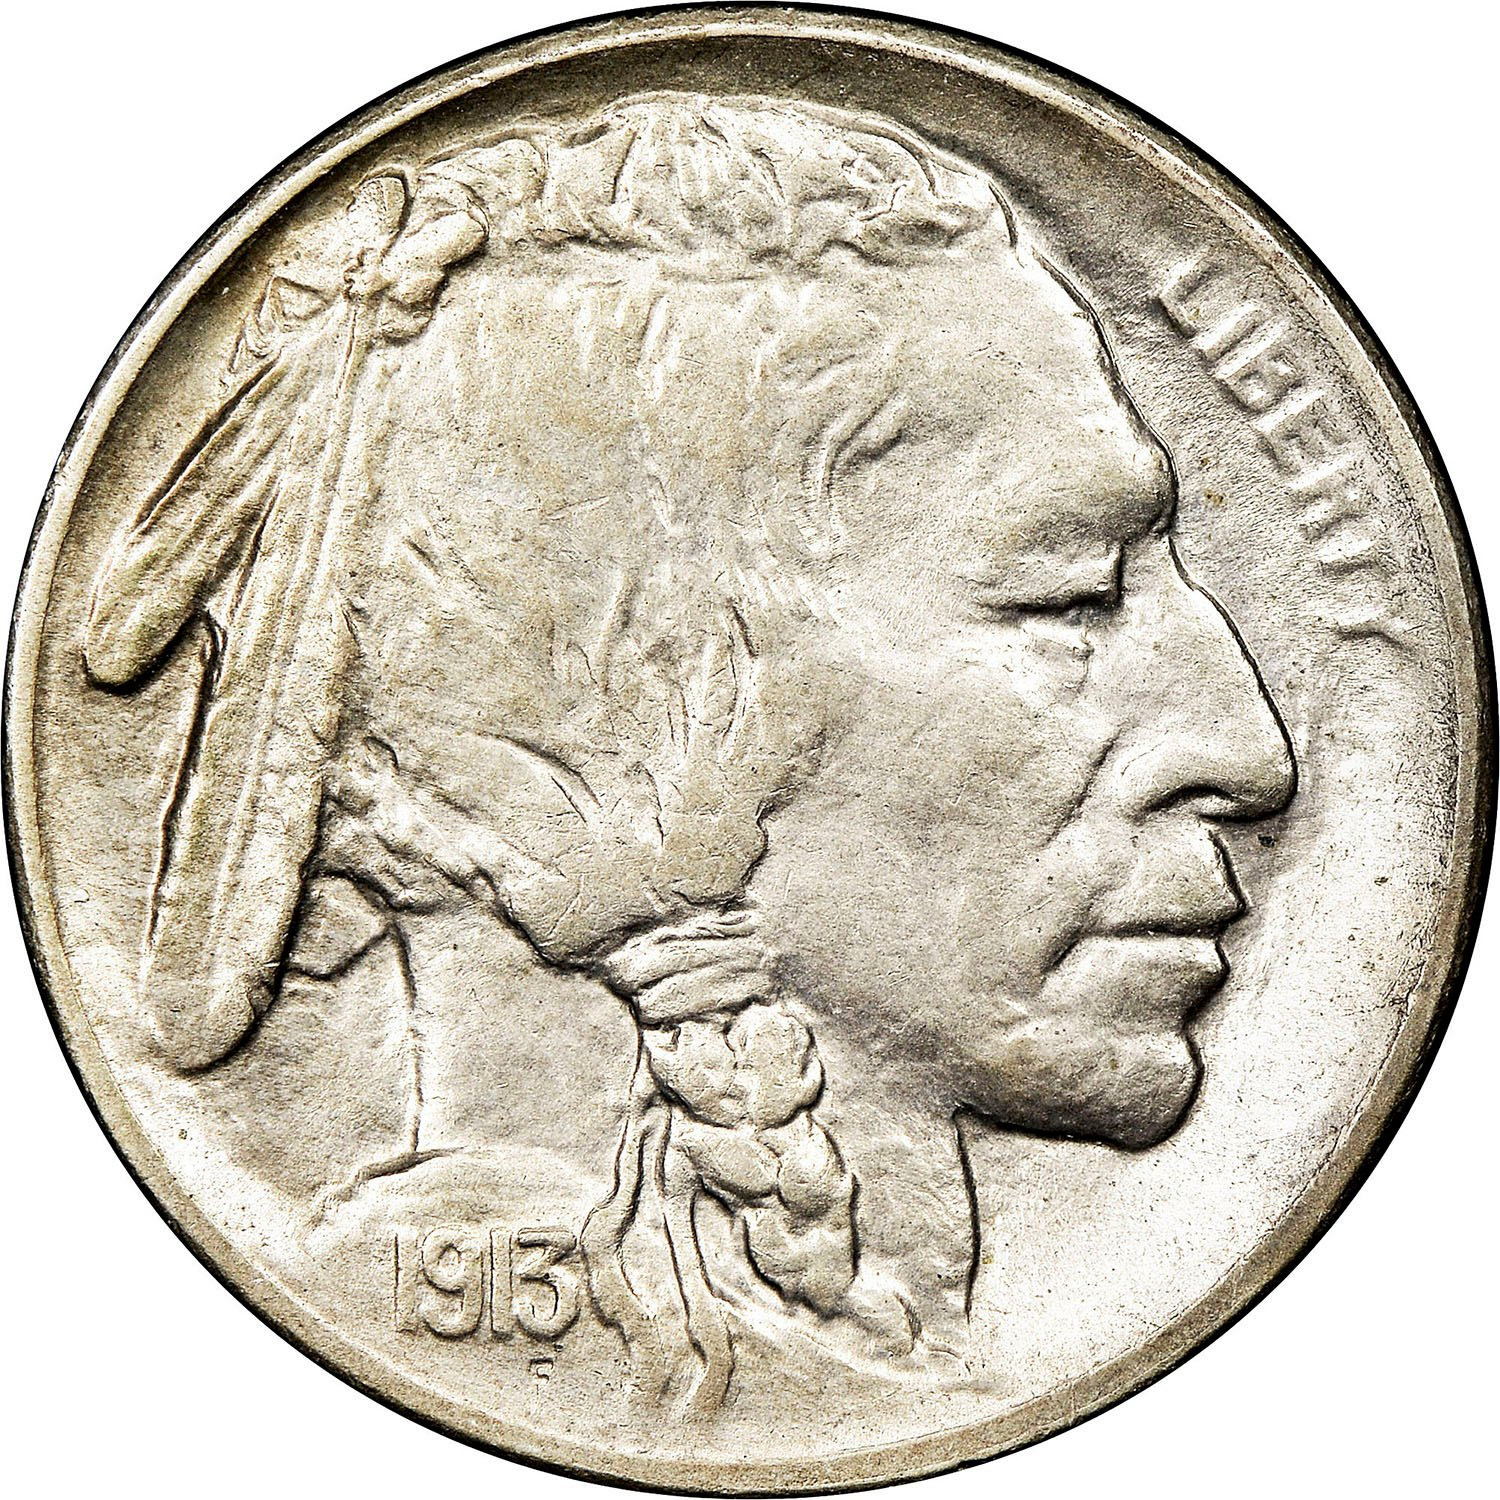 US Buffalo Nickel